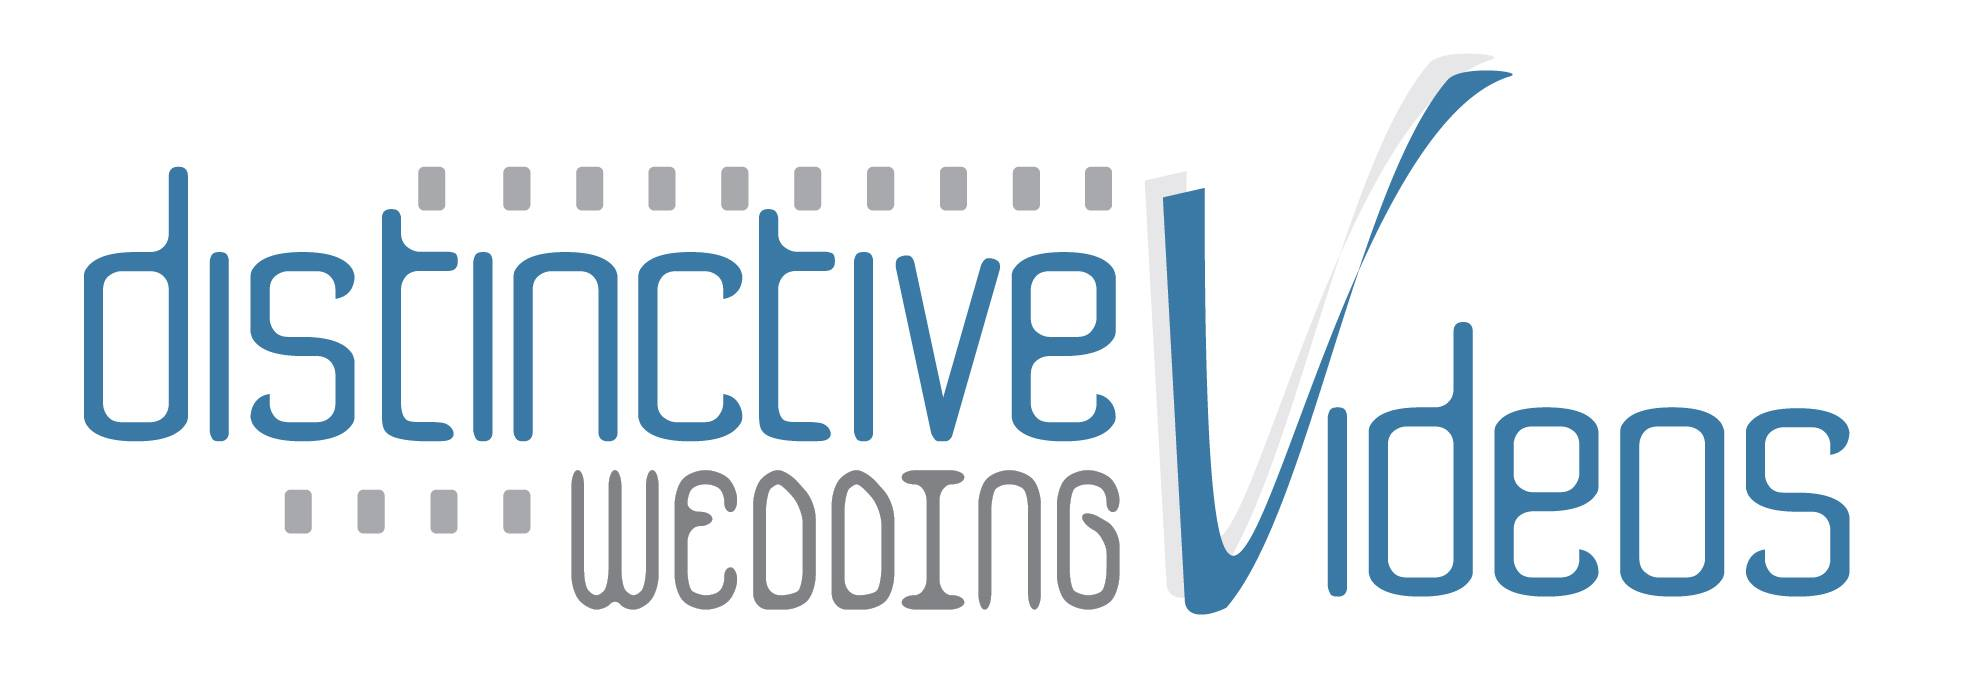 Distinctive Wedding Videos